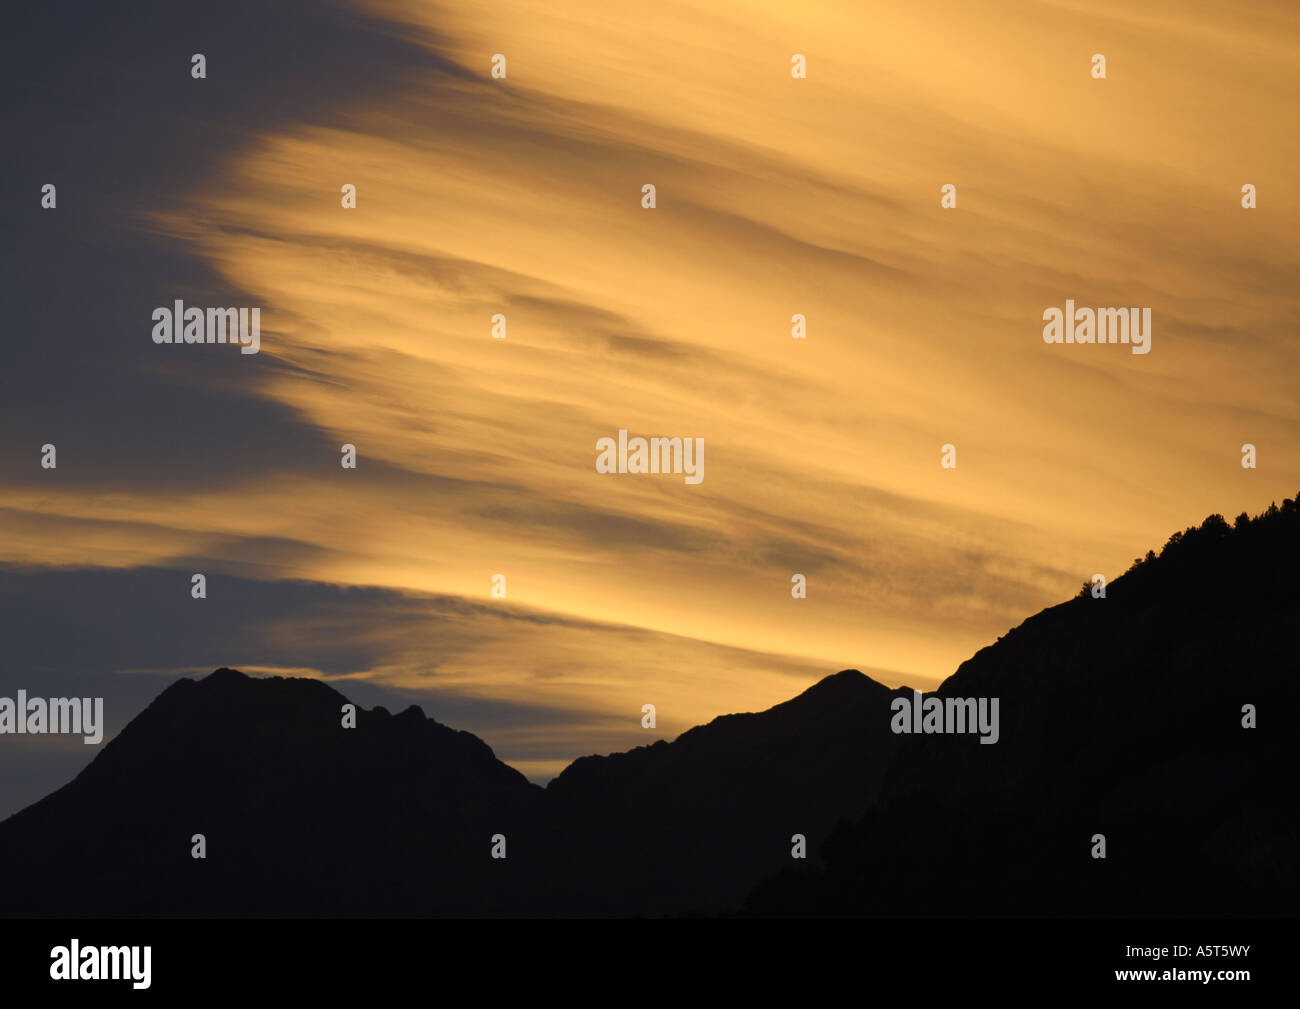 Sky at sunset and silhouette of mountains - Stock Image